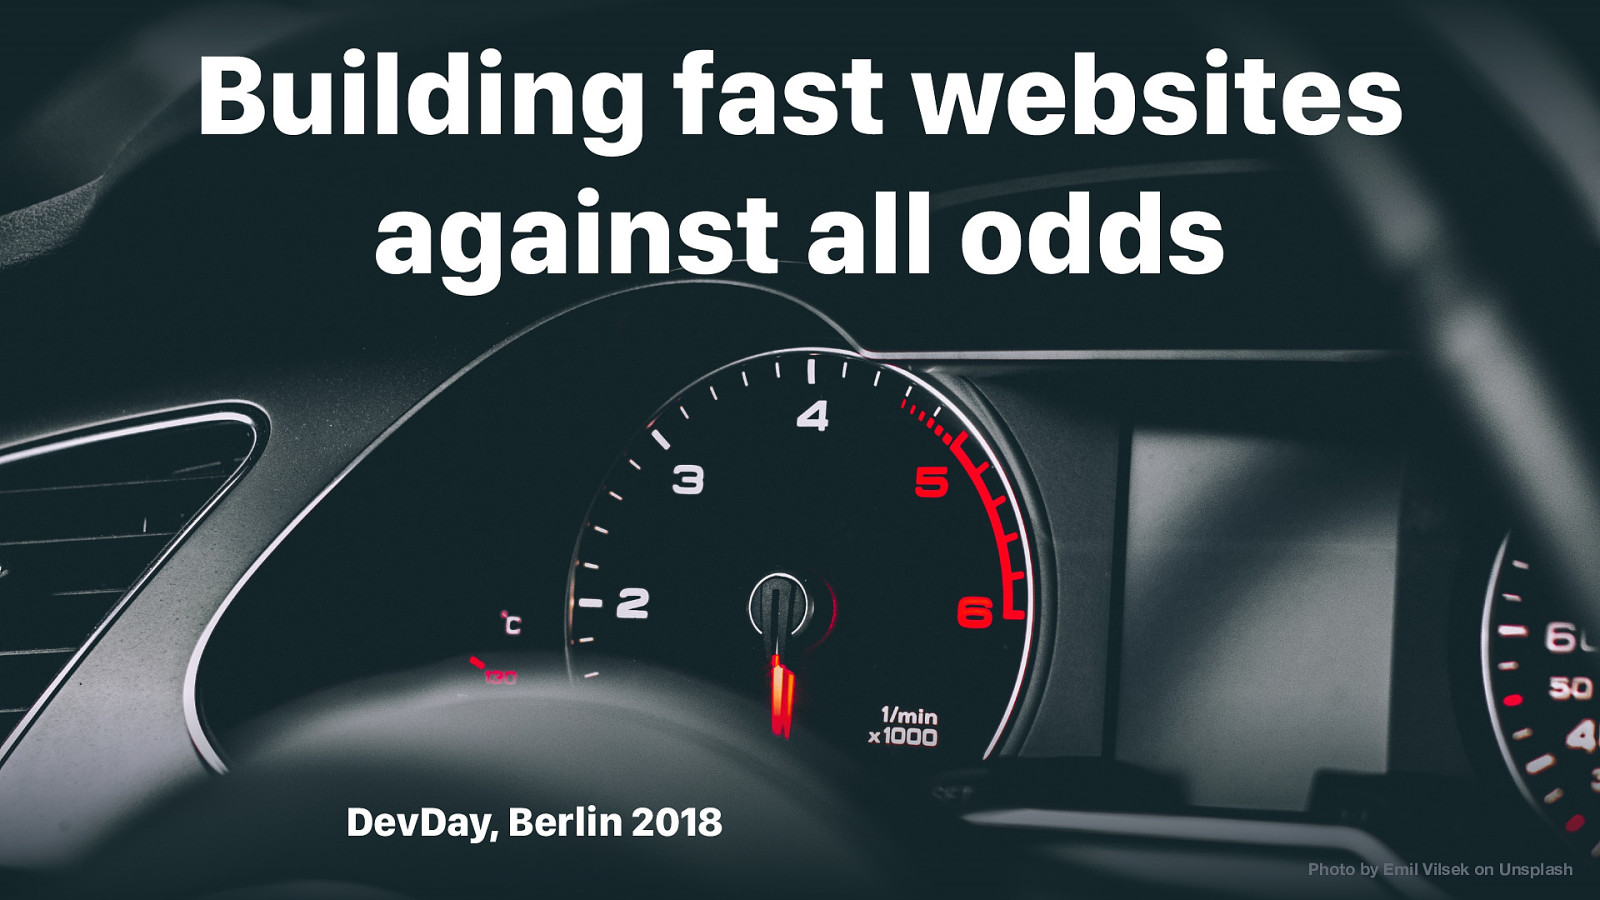 Building Fast Websites Against All Odds